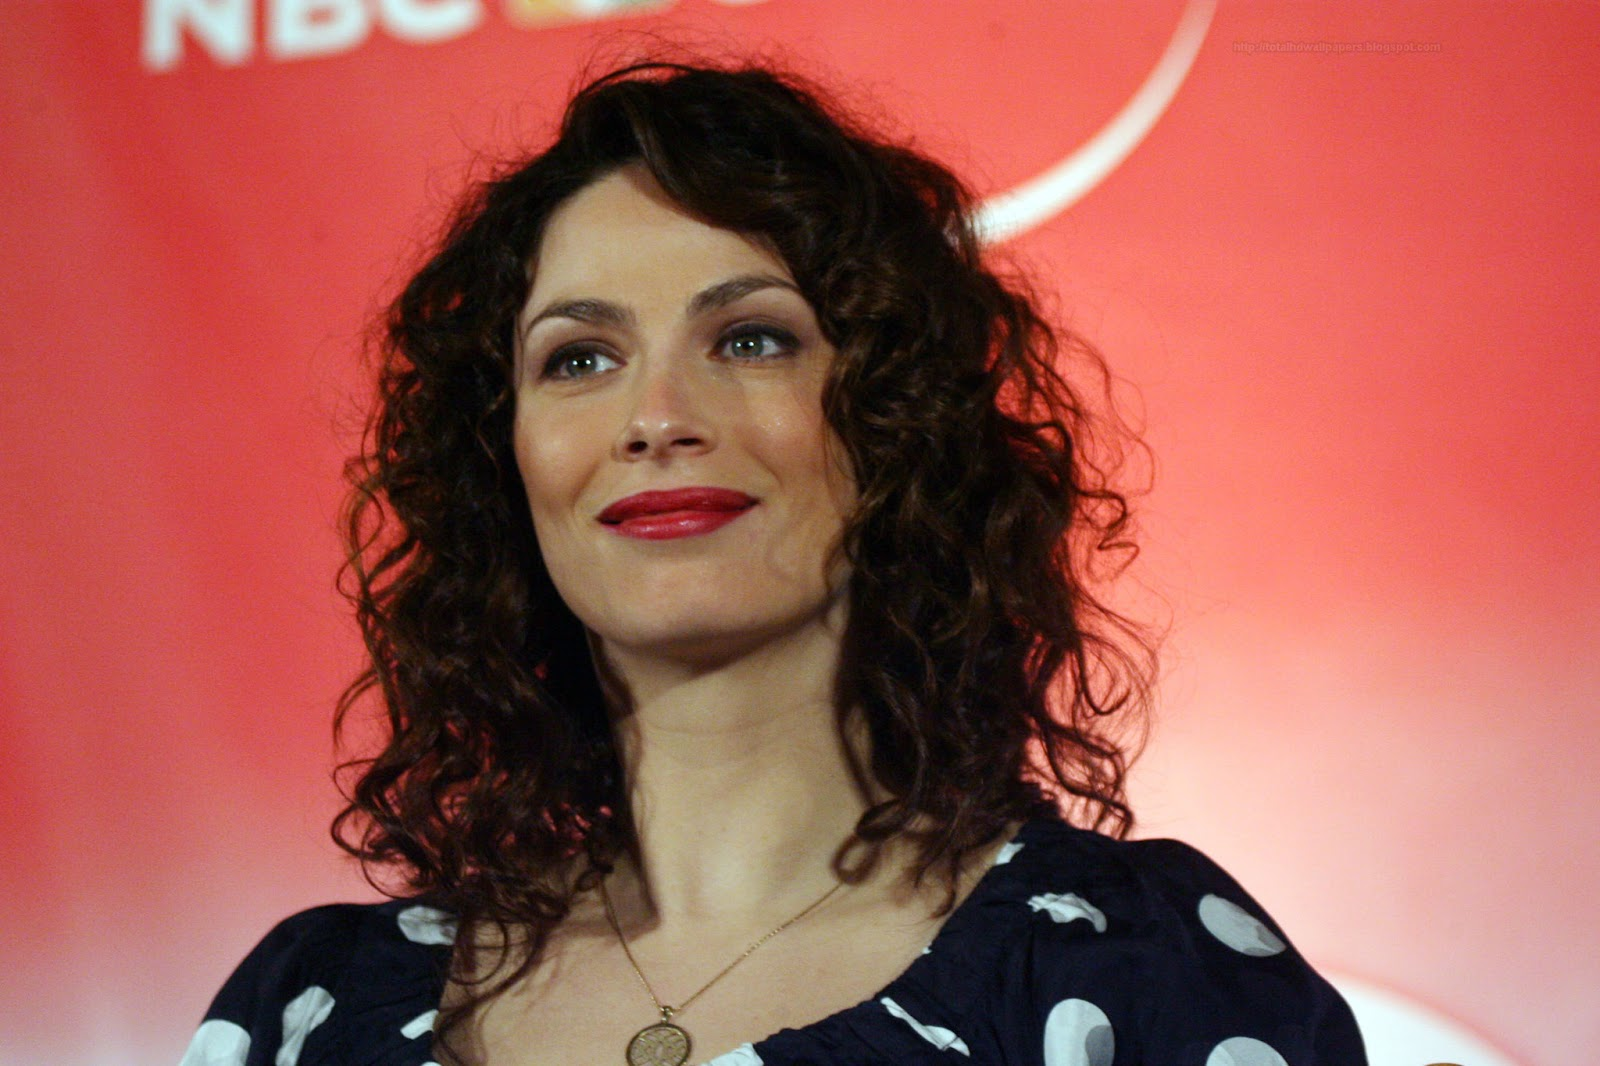 Joanne Kelly Tattoo Joanne kelly wallpapers hd. posted by saddam jamali at 02:18